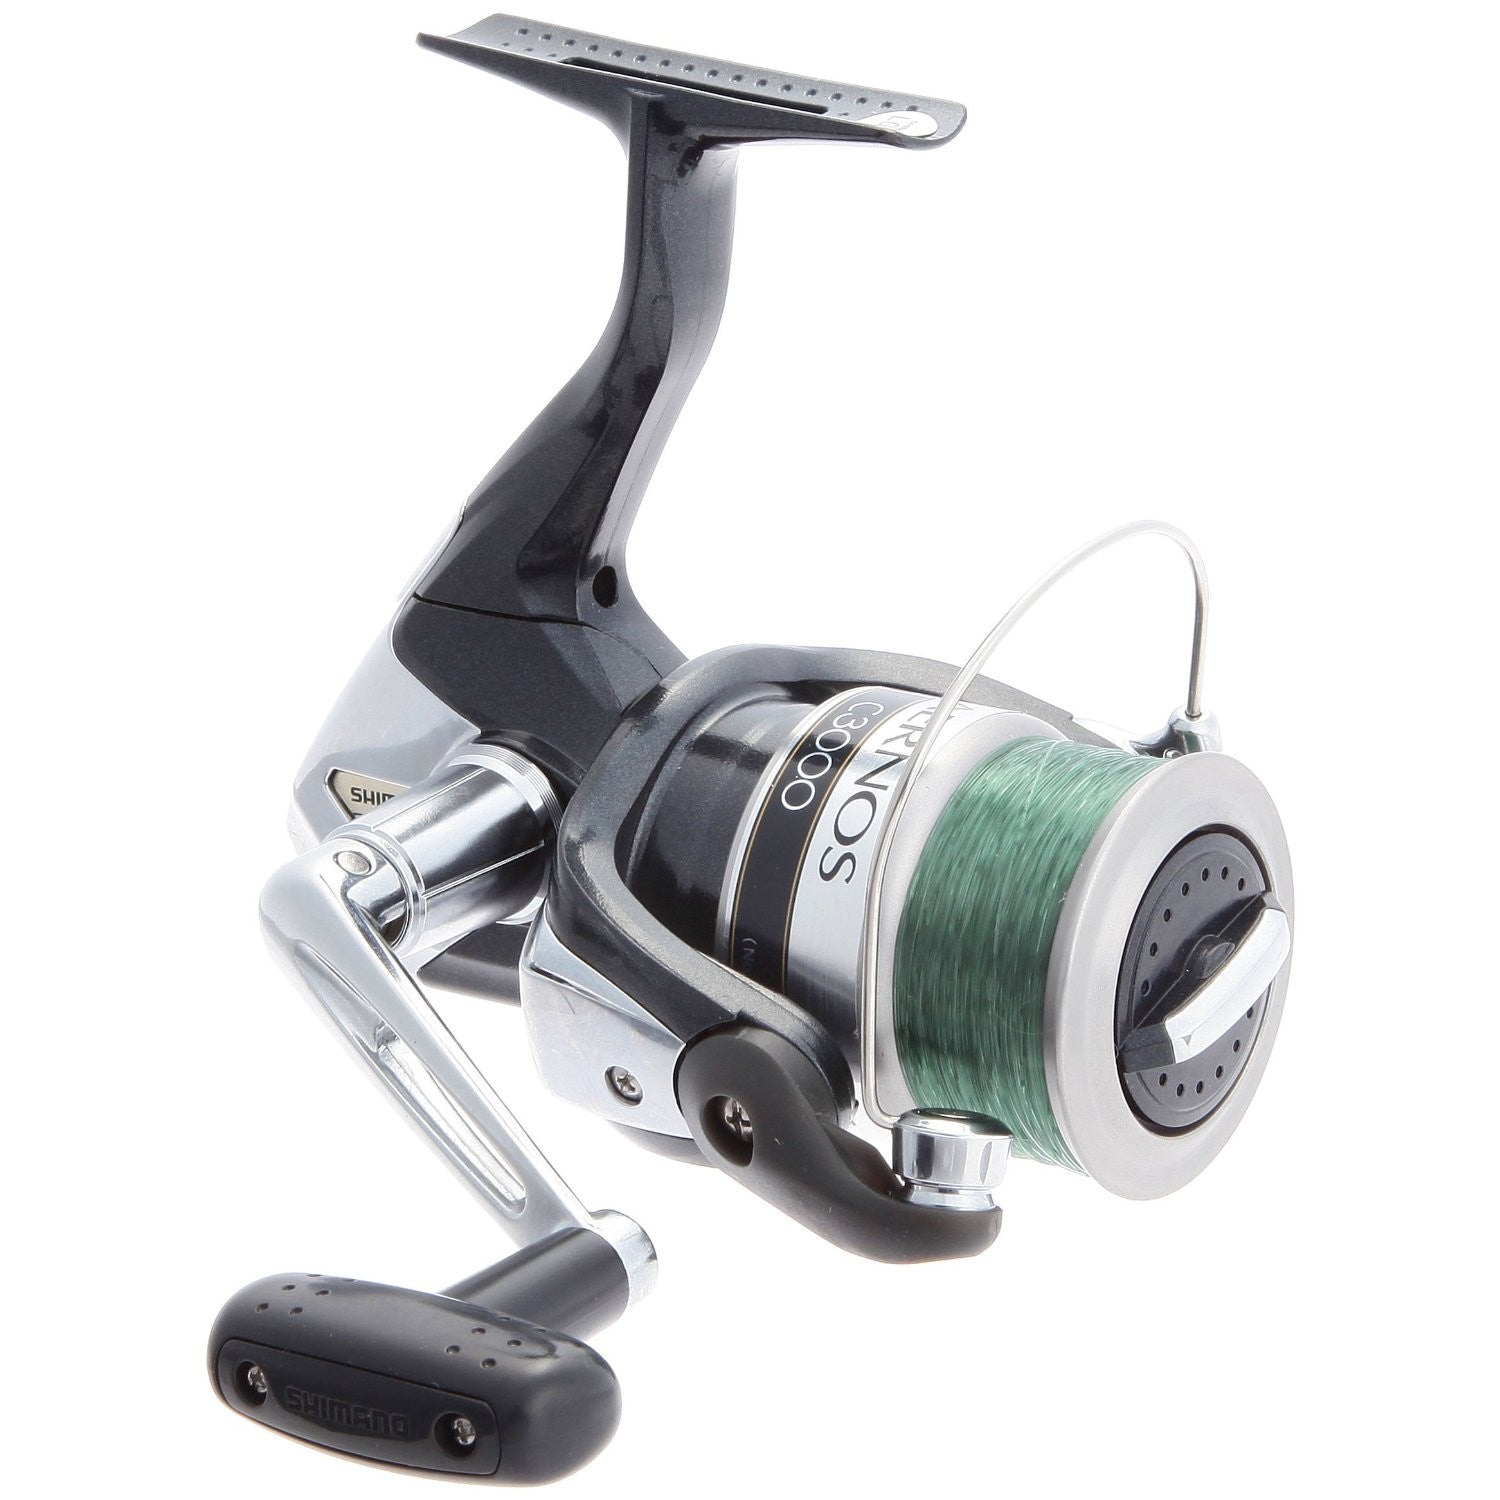 SHIMANO 12 NEW AERNOS C3000 3 issue thread with 028 792